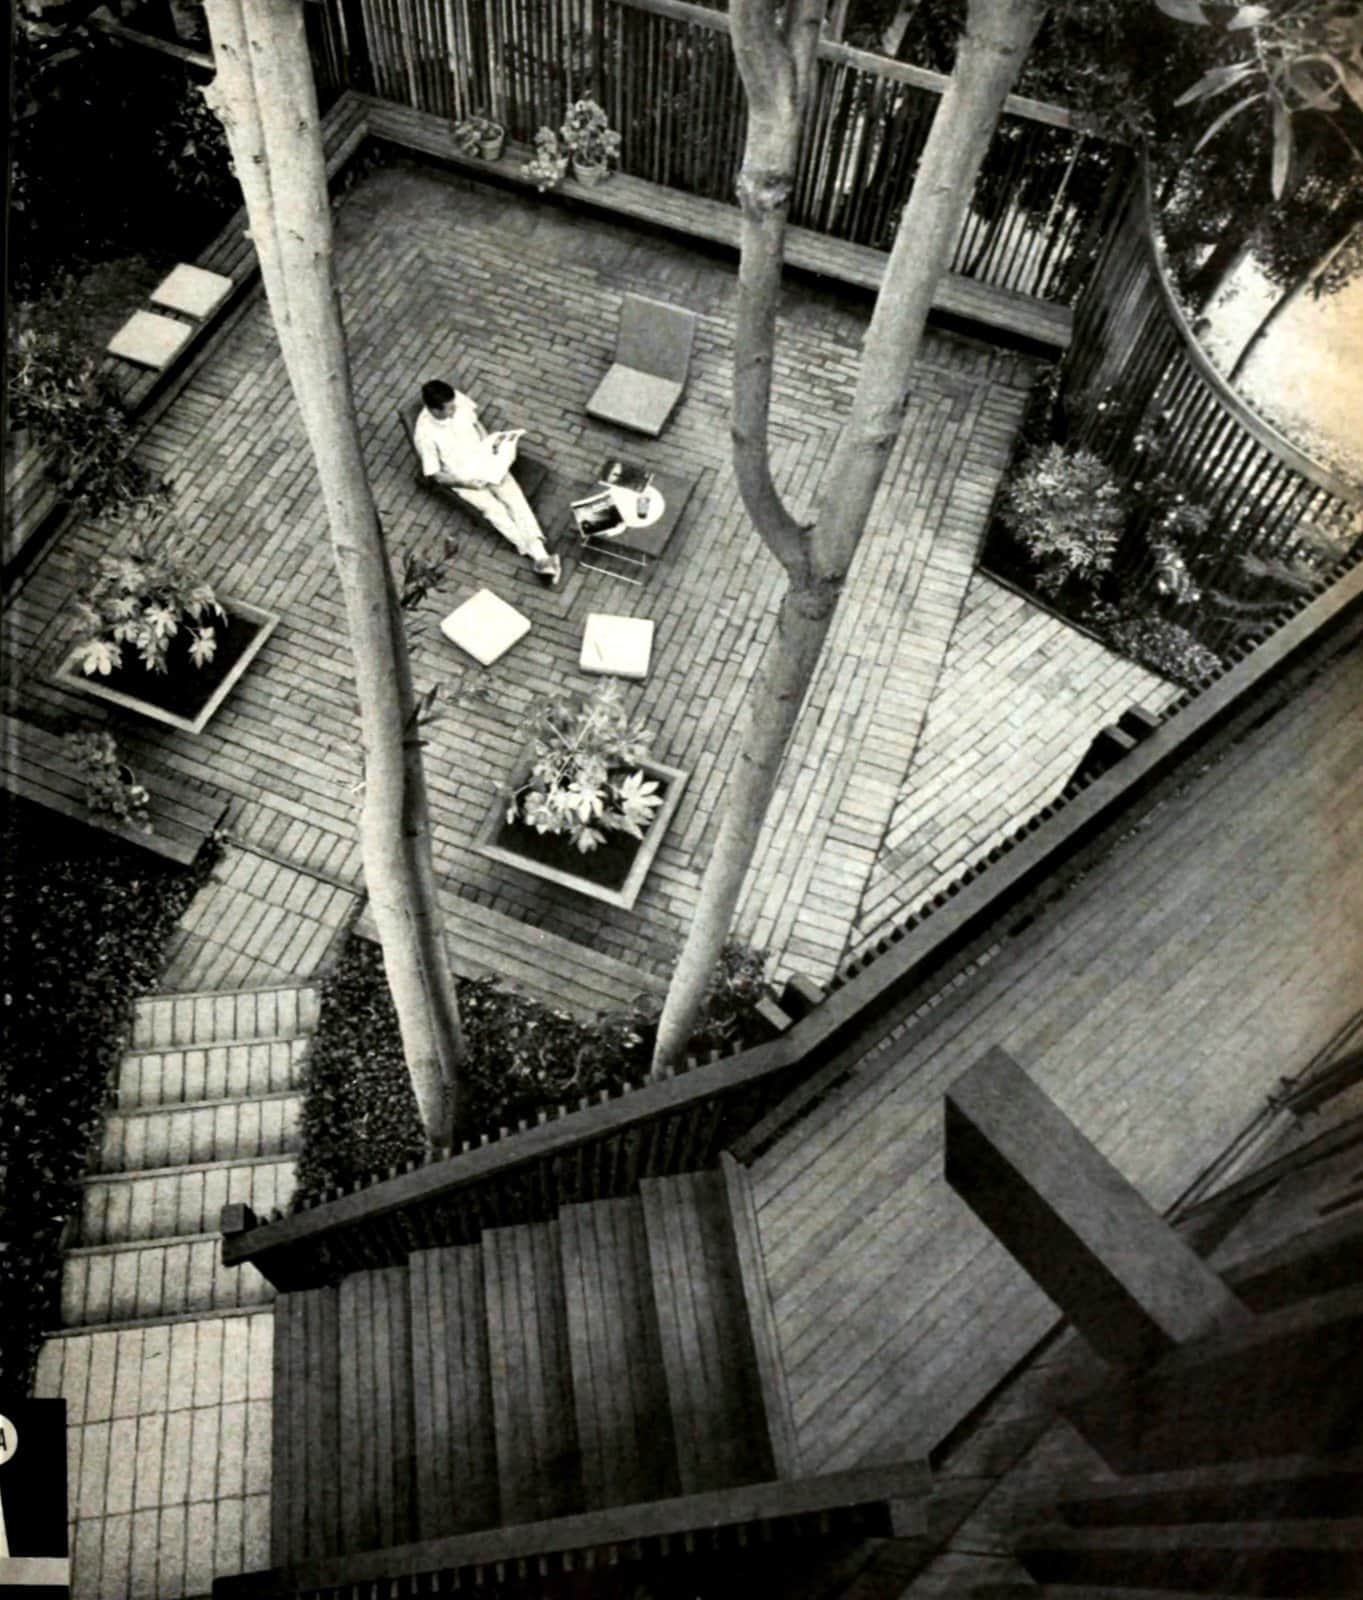 Wooden deck and staircase make a peaceful and private backyard in 1966